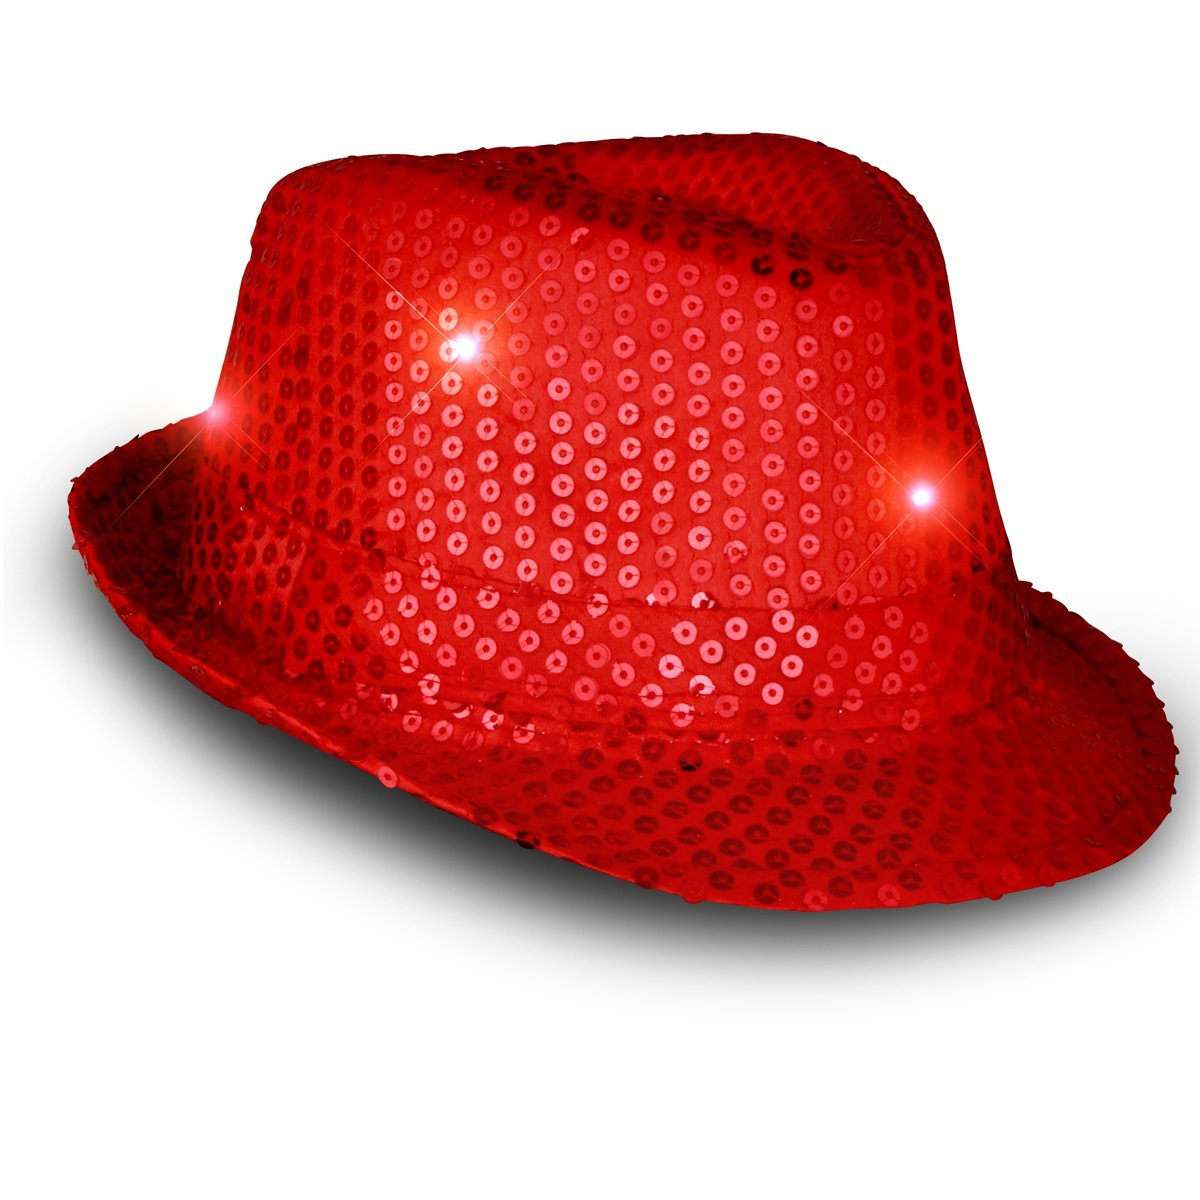 Light Up LED Flashing Fedora Hat with Red Sequins All Products